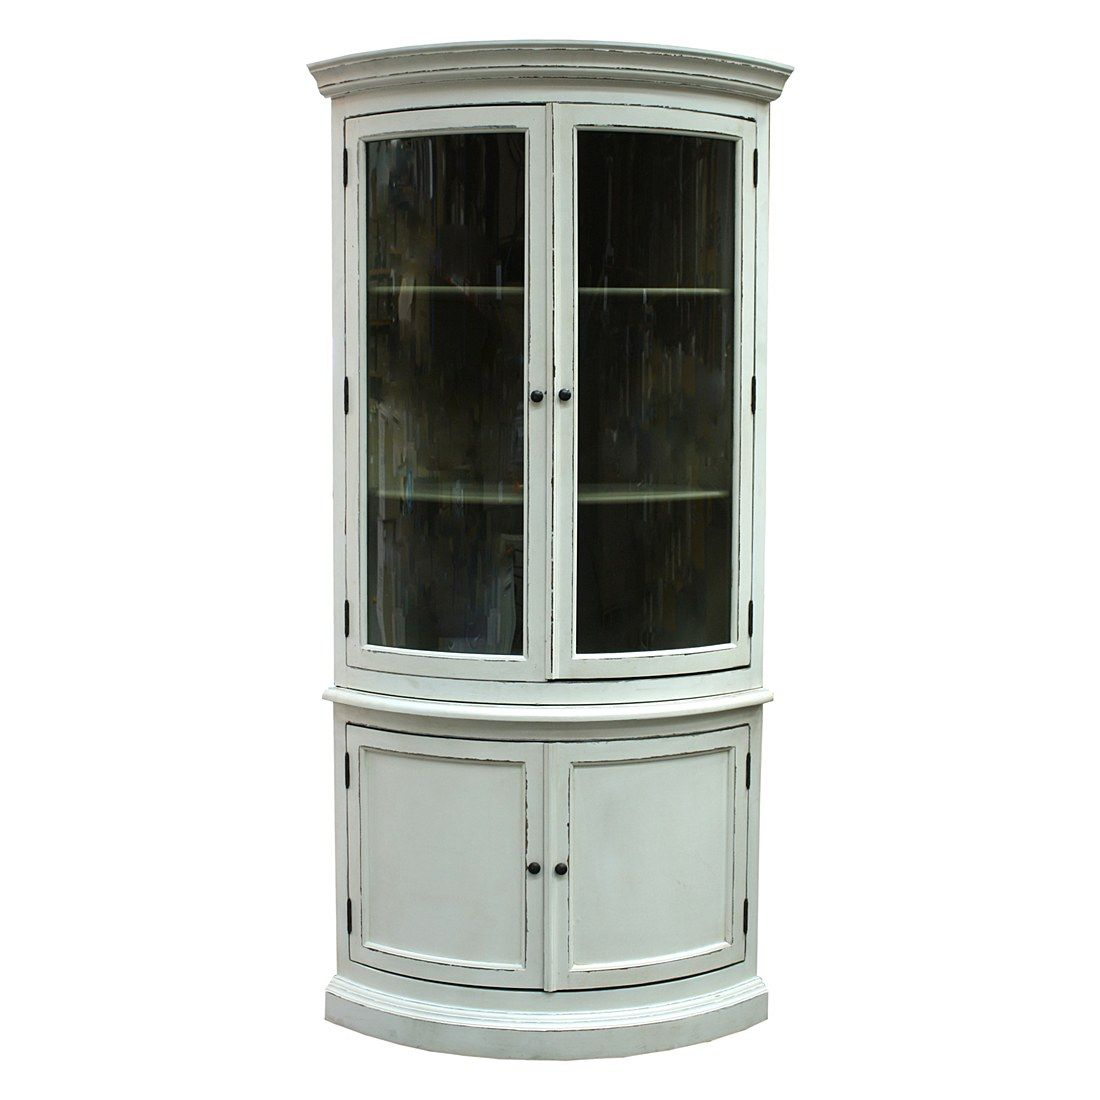 Furniture. White Wooden Tall Free